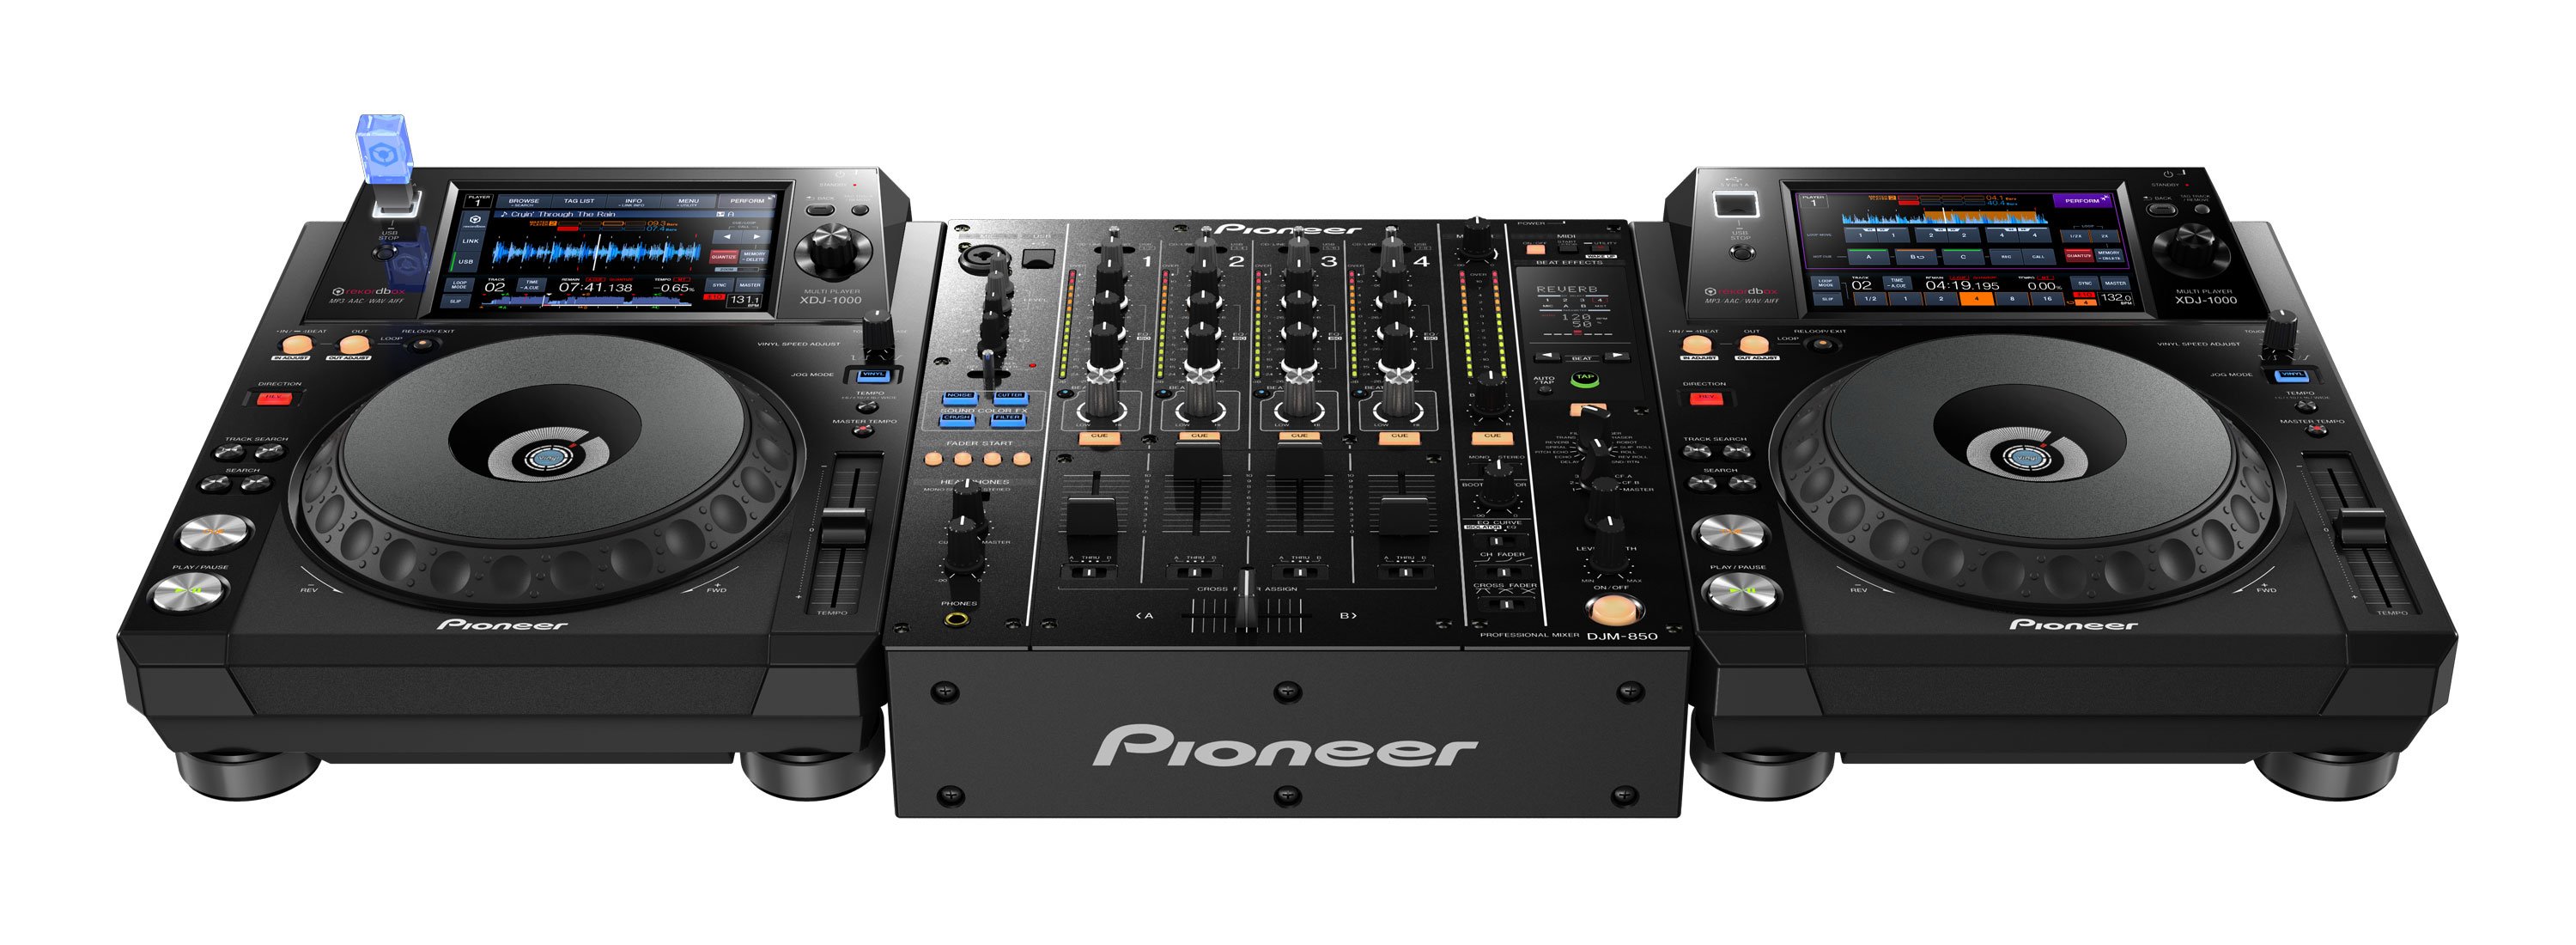 la platine dj pioneer xdj 1000 lit les morceaux via usb et wifi audiofanzine. Black Bedroom Furniture Sets. Home Design Ideas